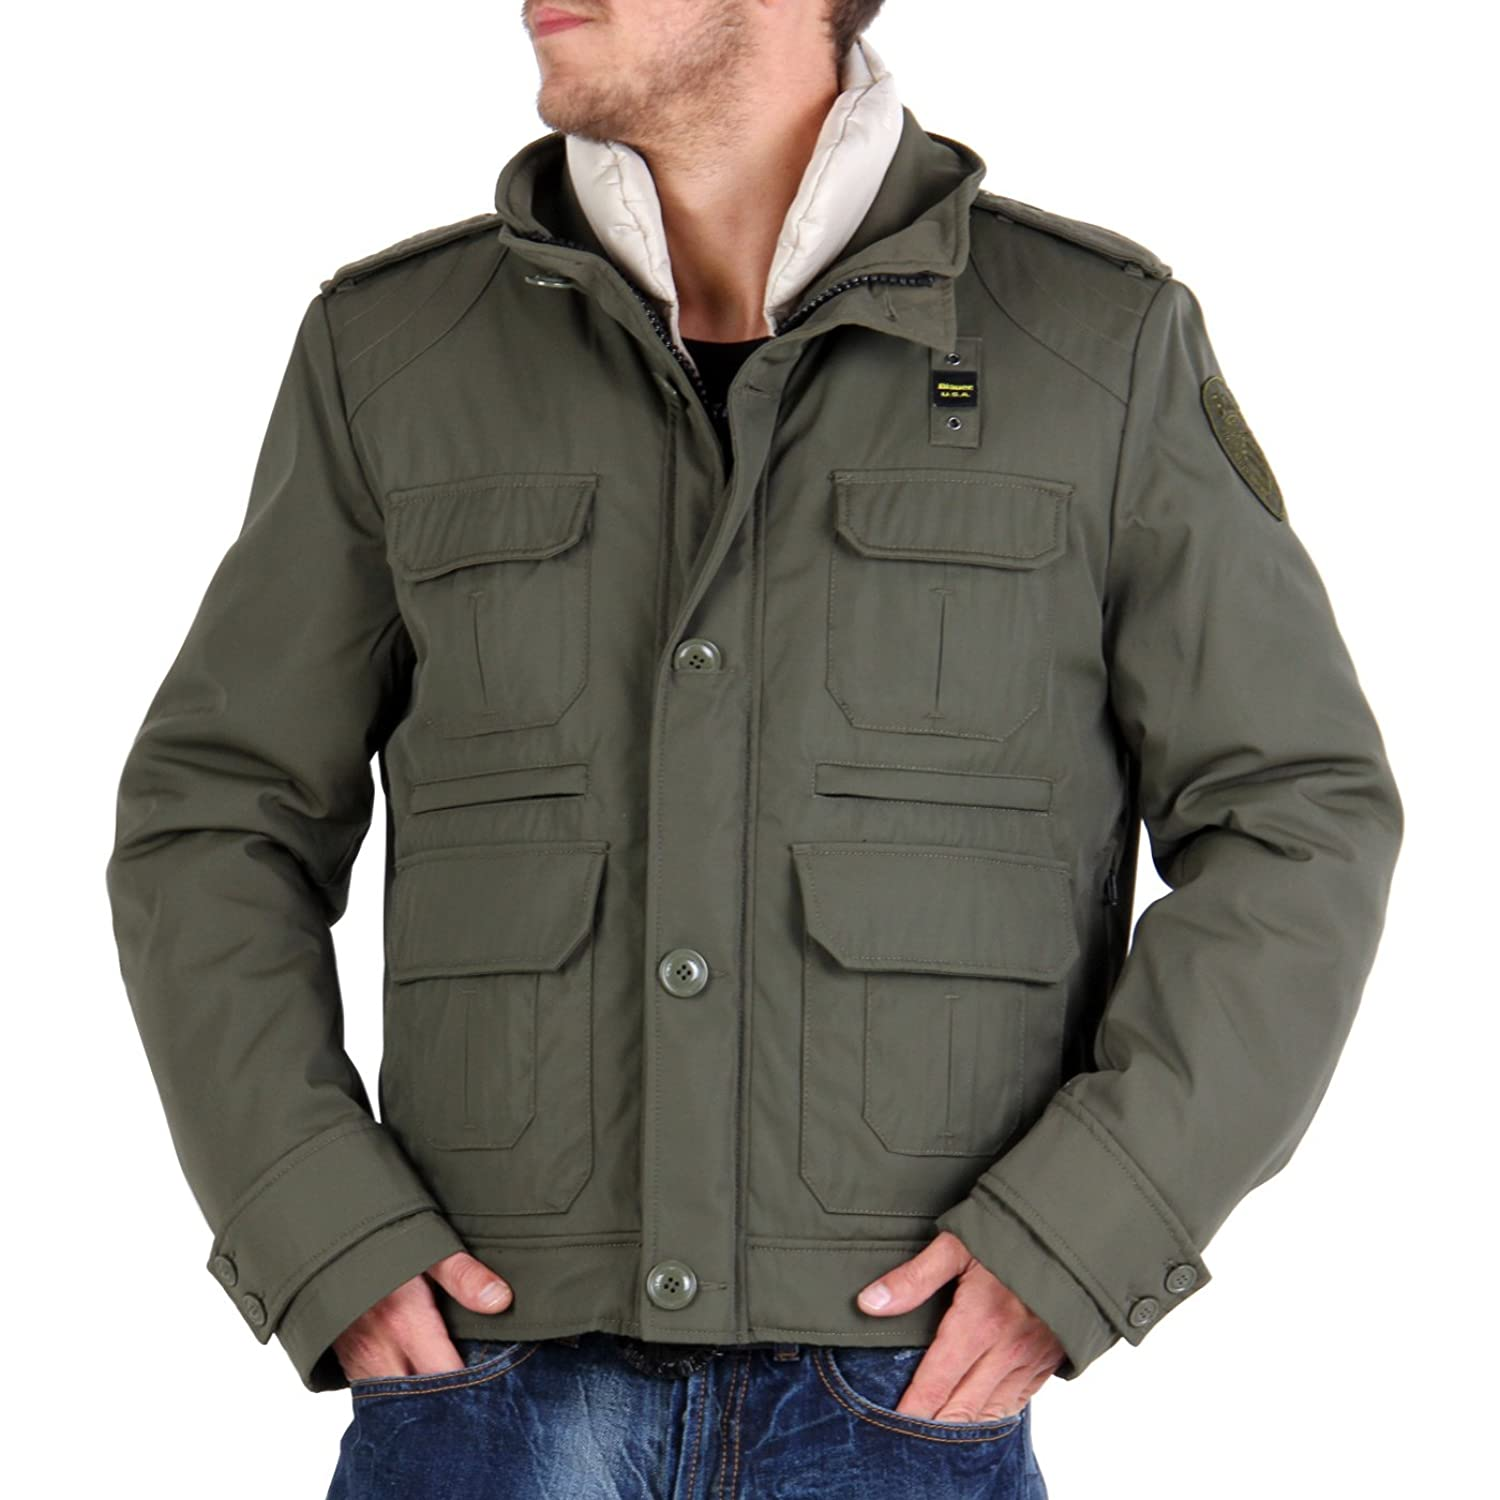 BLAUER USA Herren 2-in-1 Field Jacket Green BLU0557